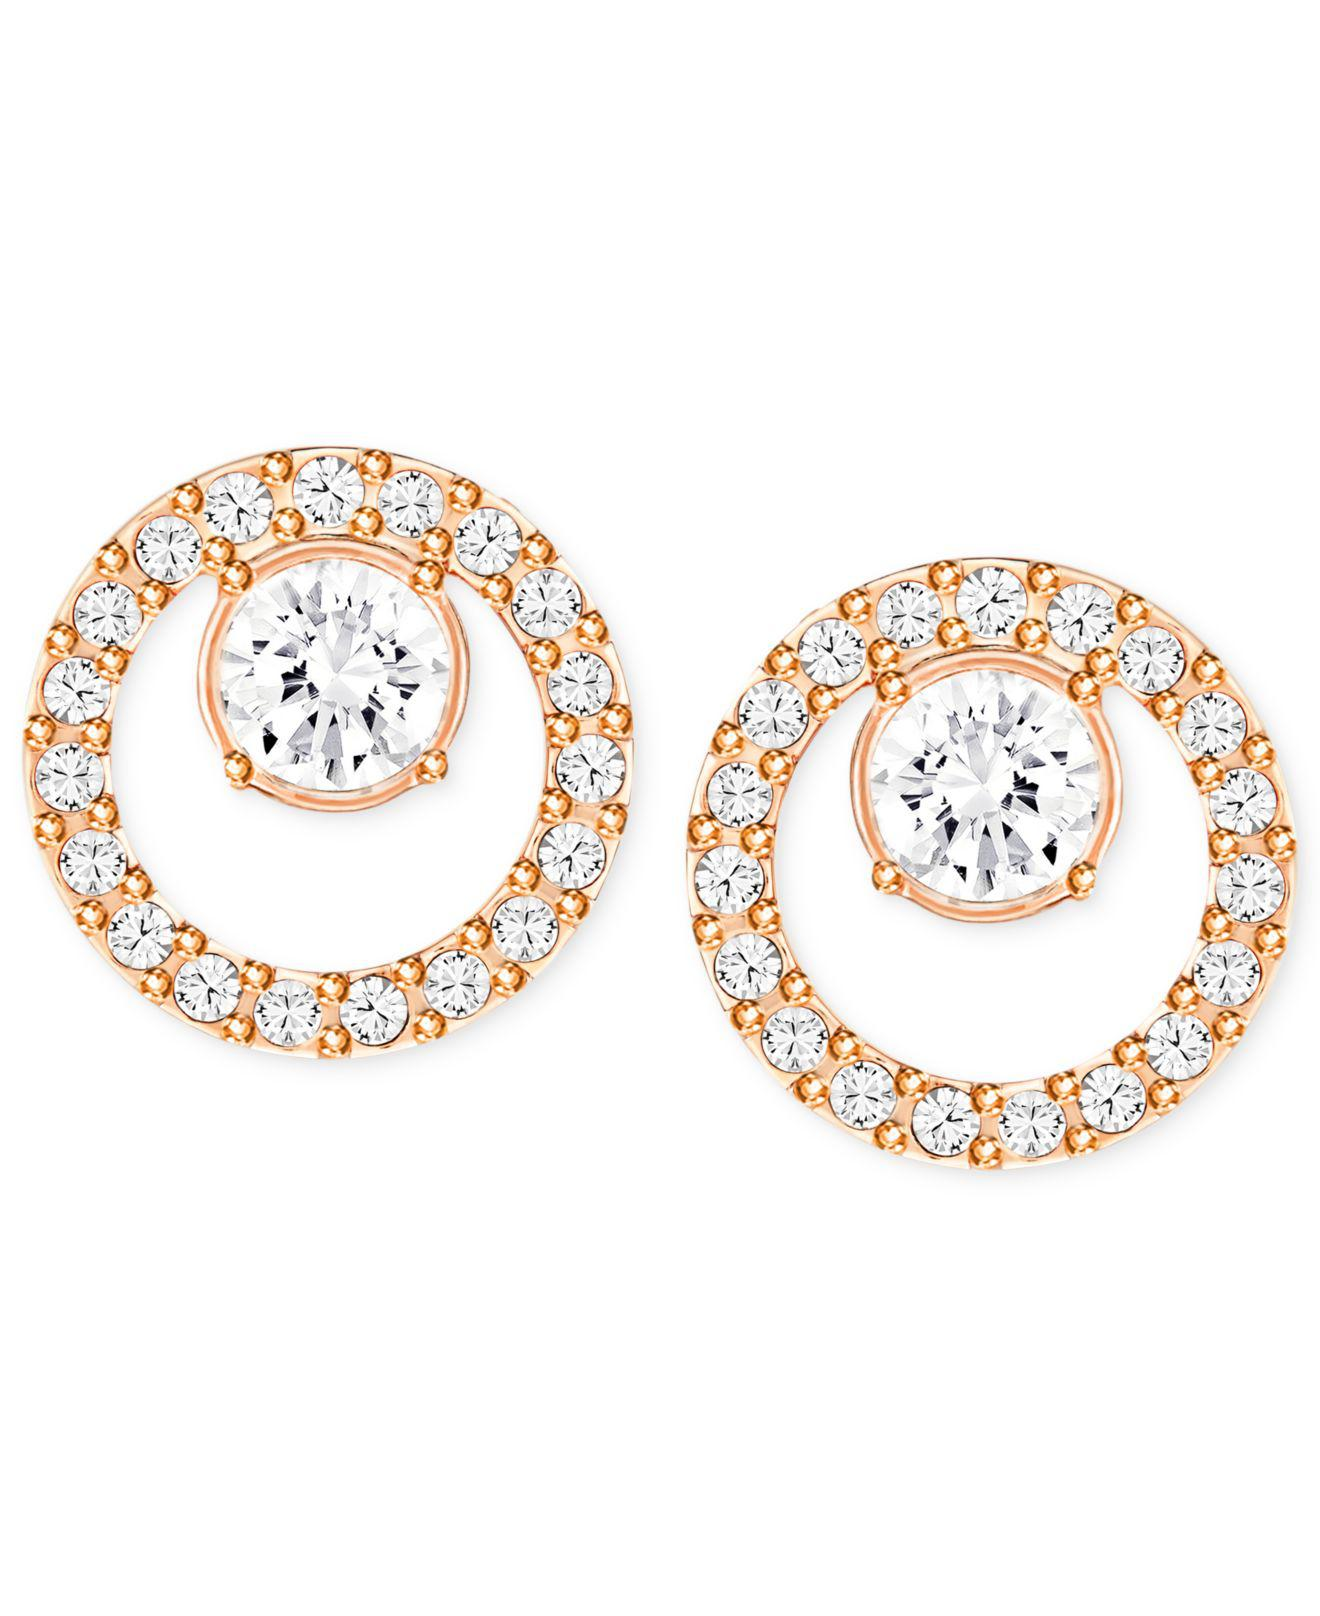 Lyst Swarovski Rose Gold Tone Pavé Circle And Crystal Stud Earrings In Metallic